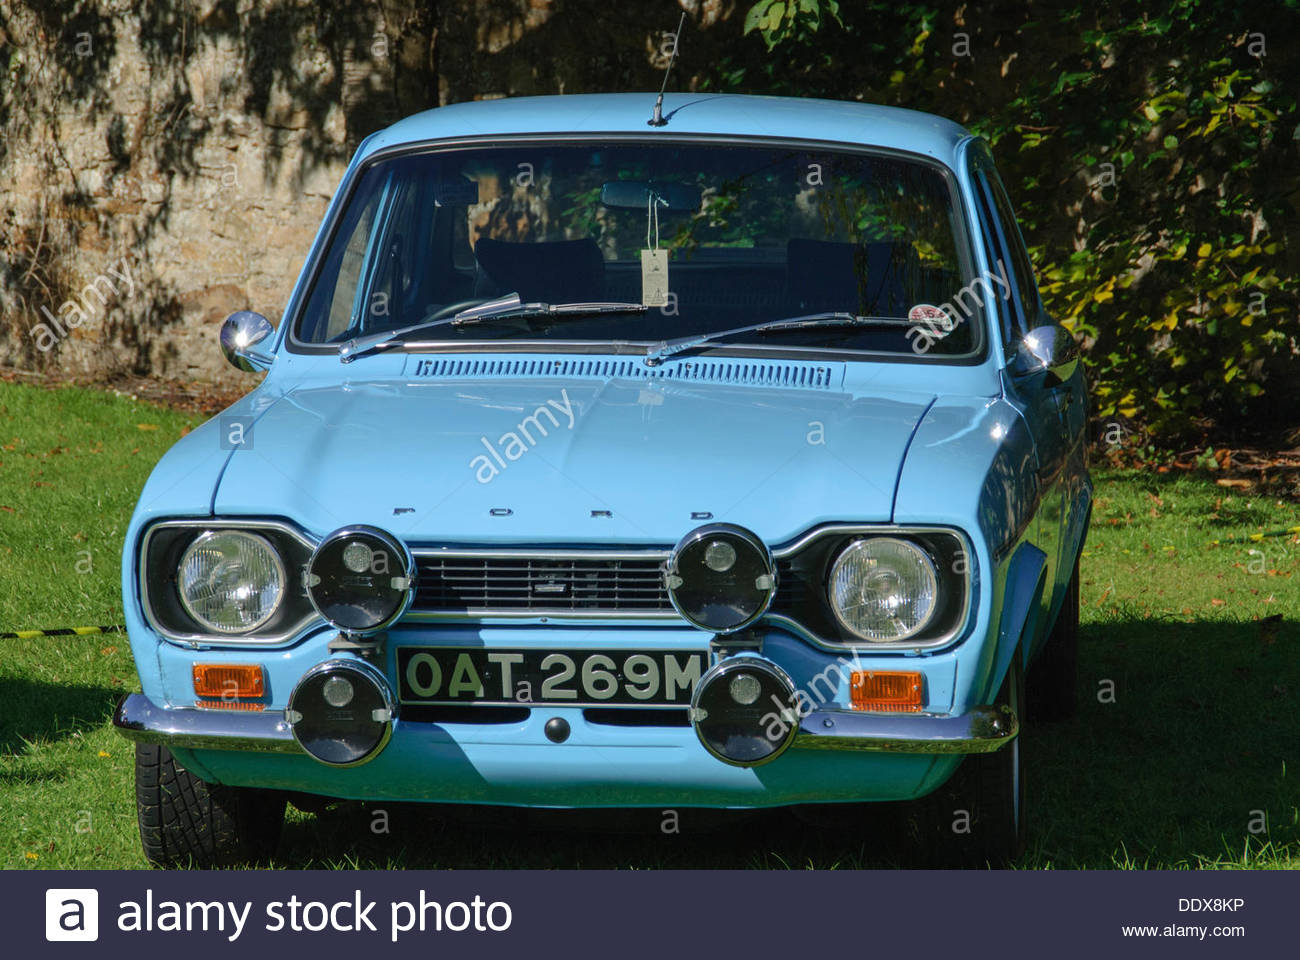 Ford escort mk1 on display during